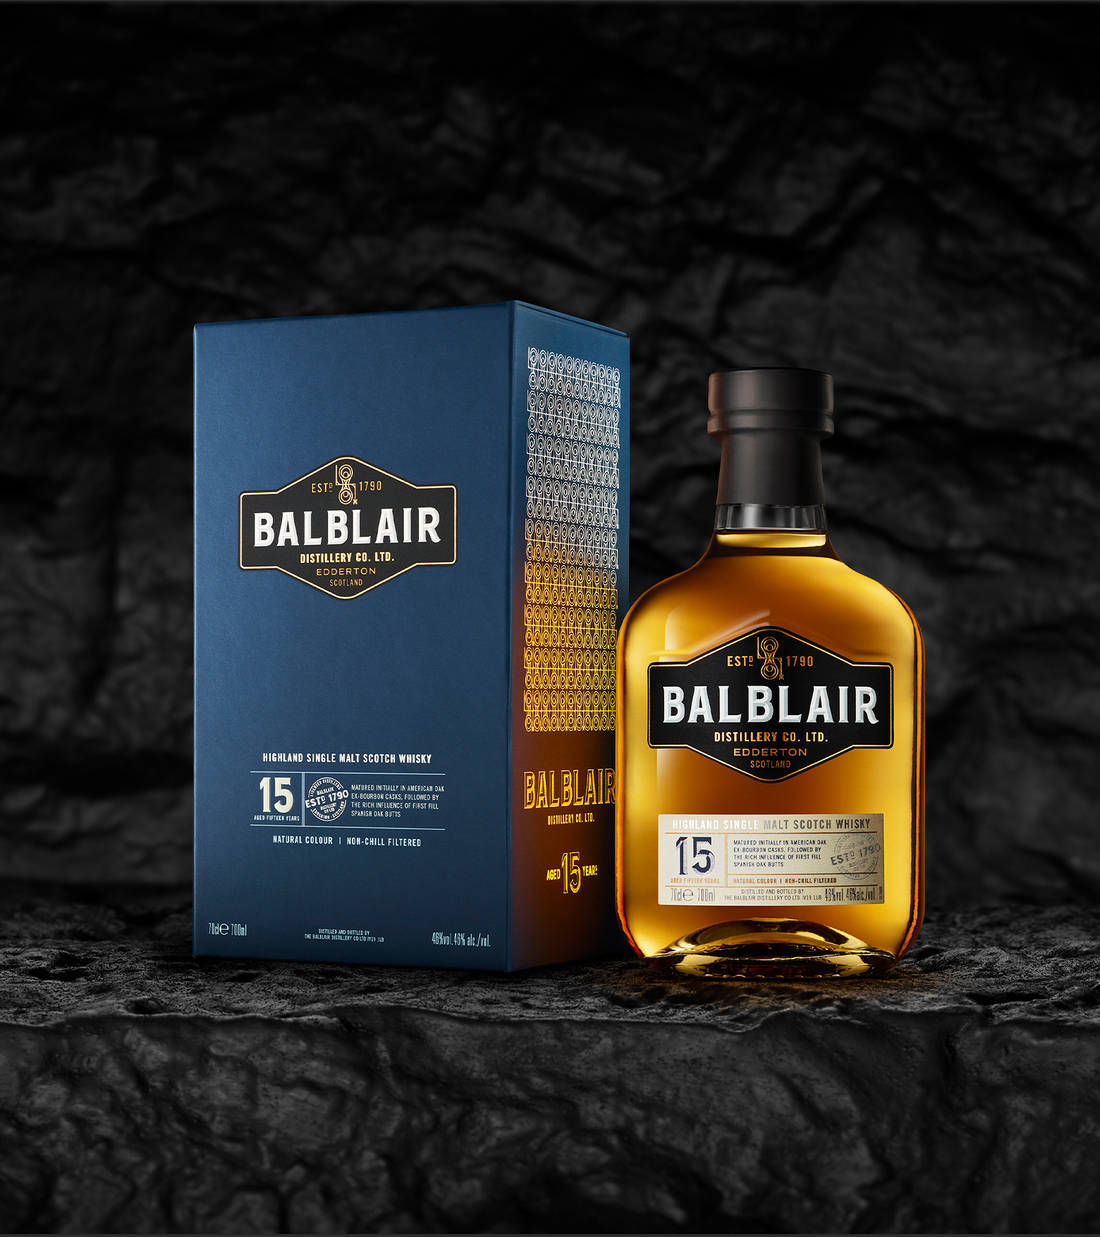 Balblair 15 year old bottle and box